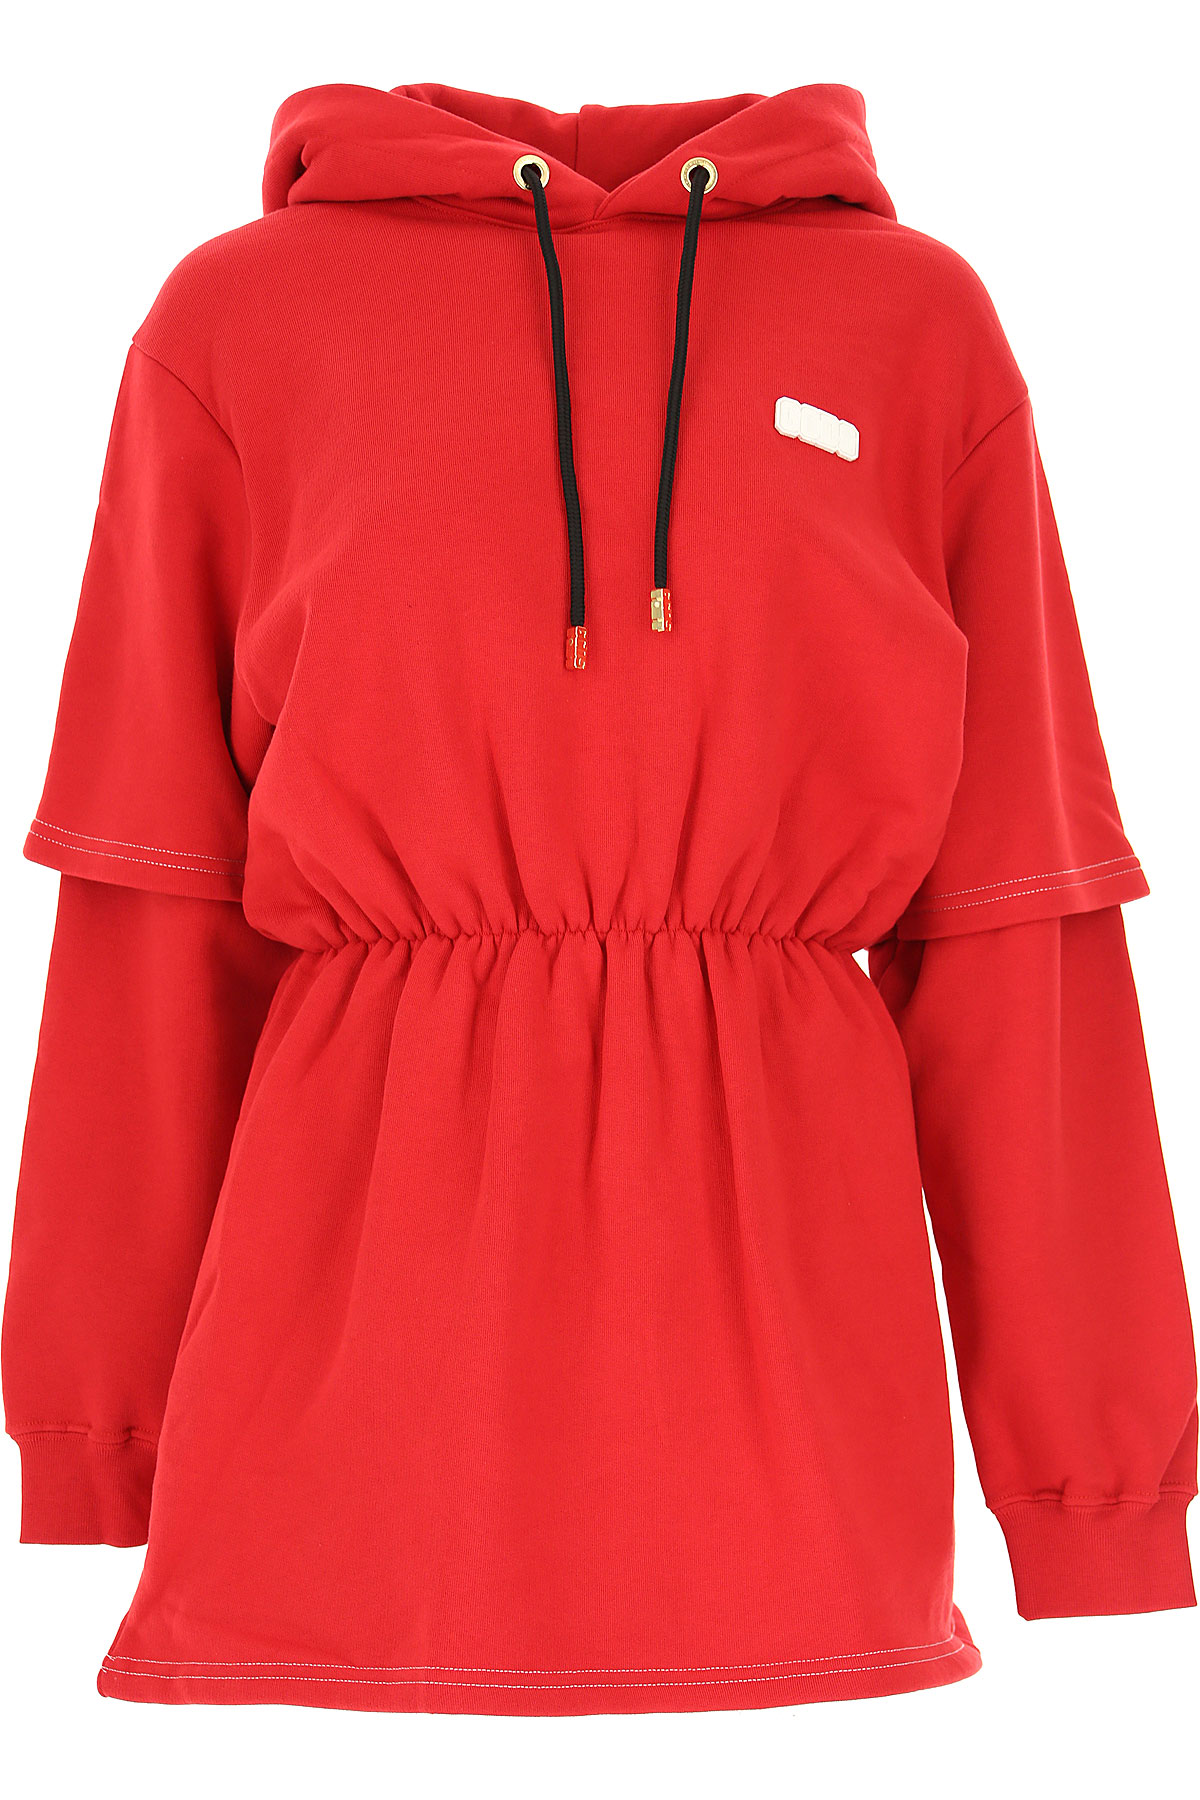 GCDS Dress for Women, Evening Cocktail Party On Sale, Red, Cotton, 2019, 4 6